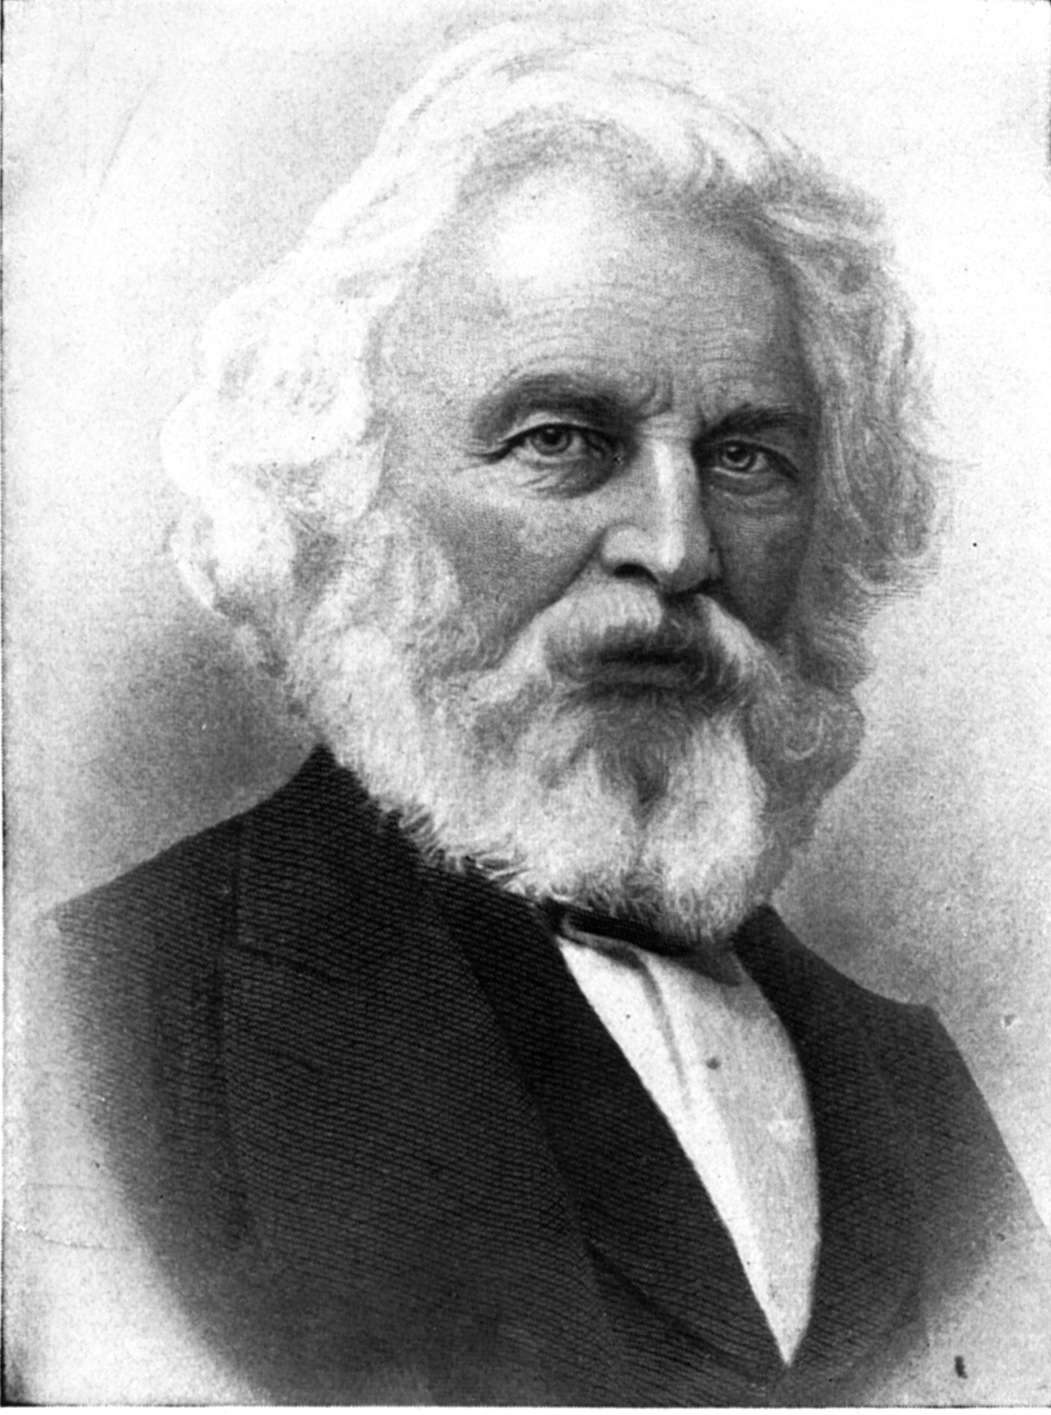 henry wadsworth longfellow essay Henry longfellow essays henry longfellow is an american poet who writes about life and brings meaning to it in his poems in several of his poems, the reader will find examples of life, love, death, contemplation, and inspiration.